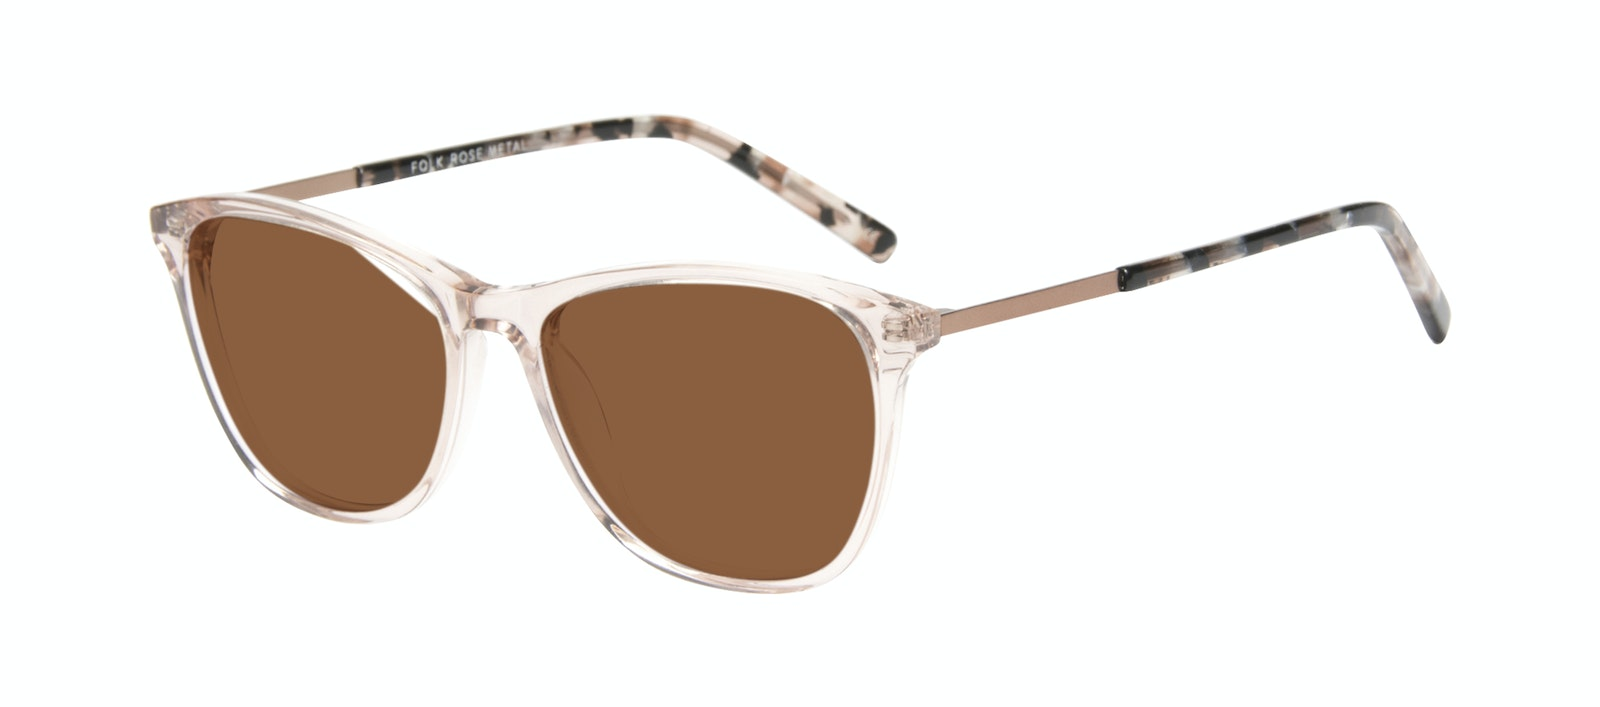 Affordable Fashion Glasses Rectangle Sunglasses Women Folk Rose Metal Tilt